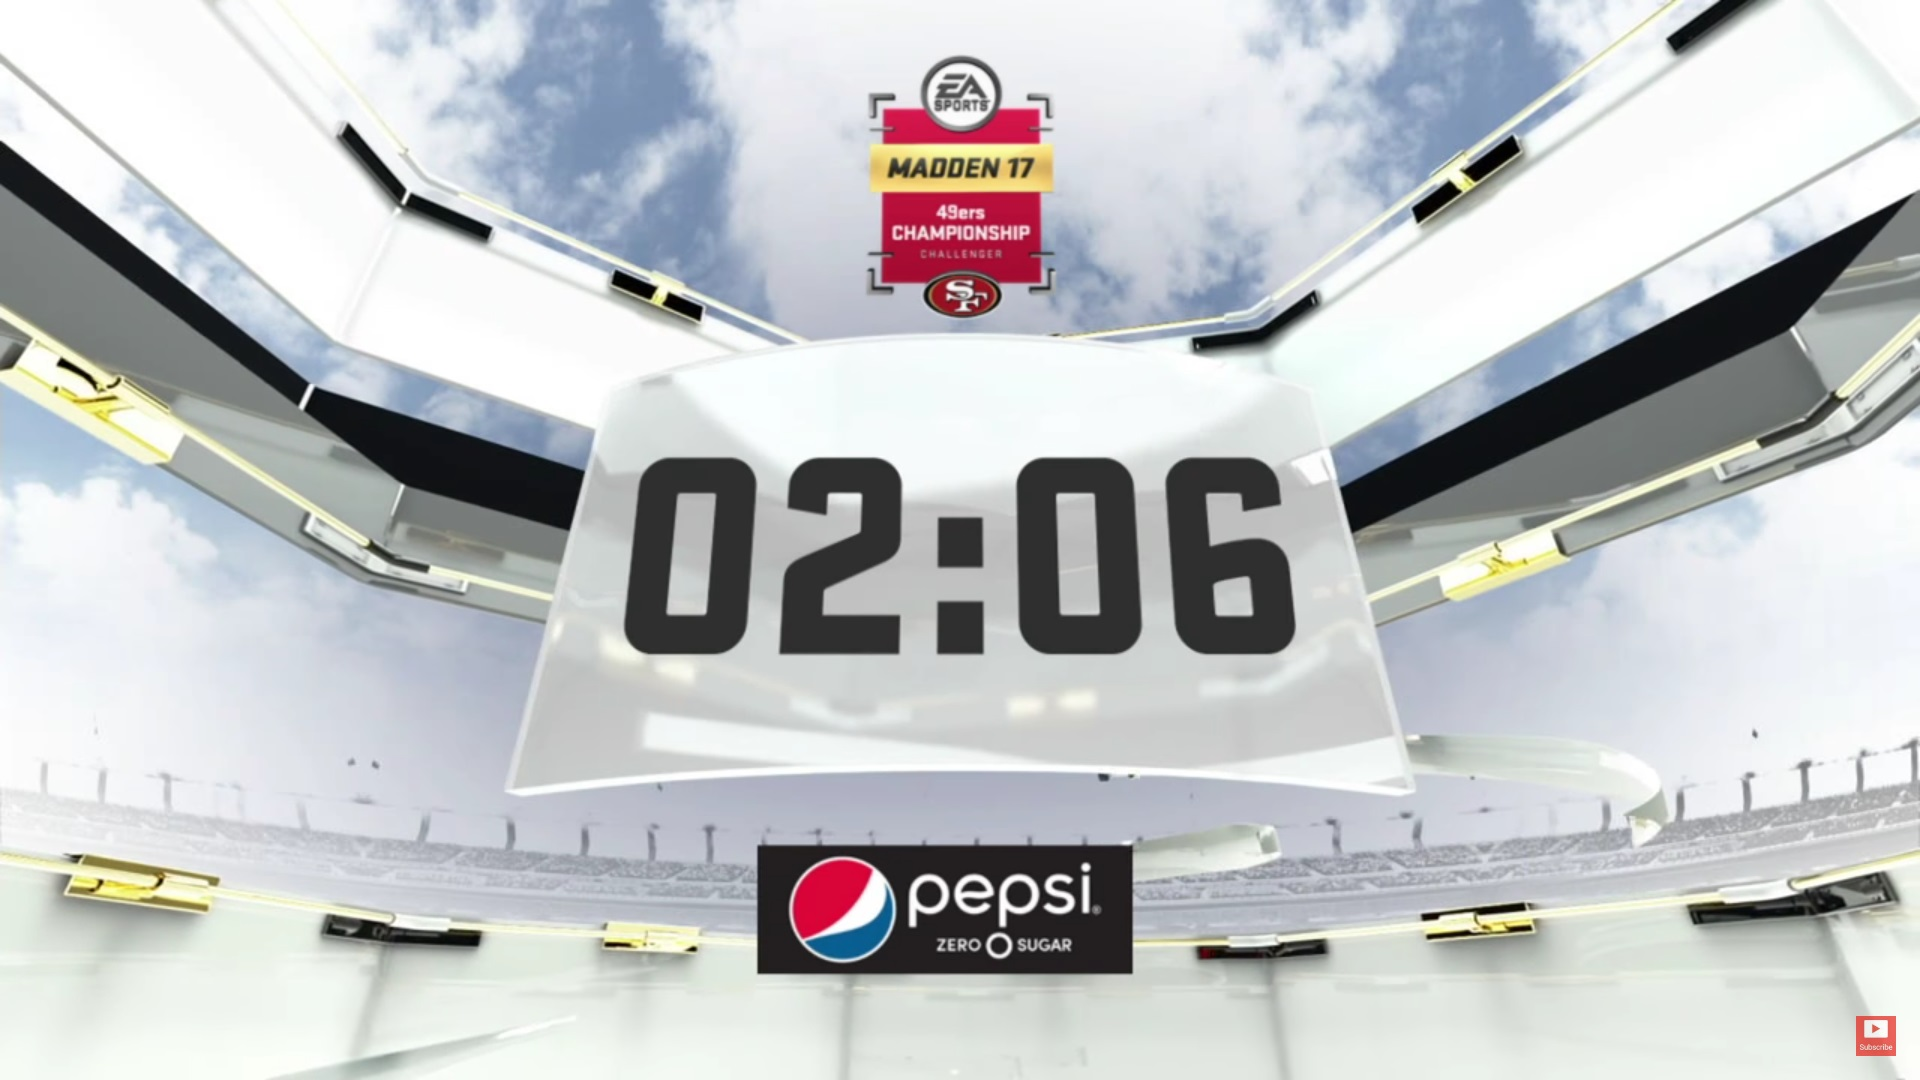 Countdown clock advertisement (Photo: Youtube)